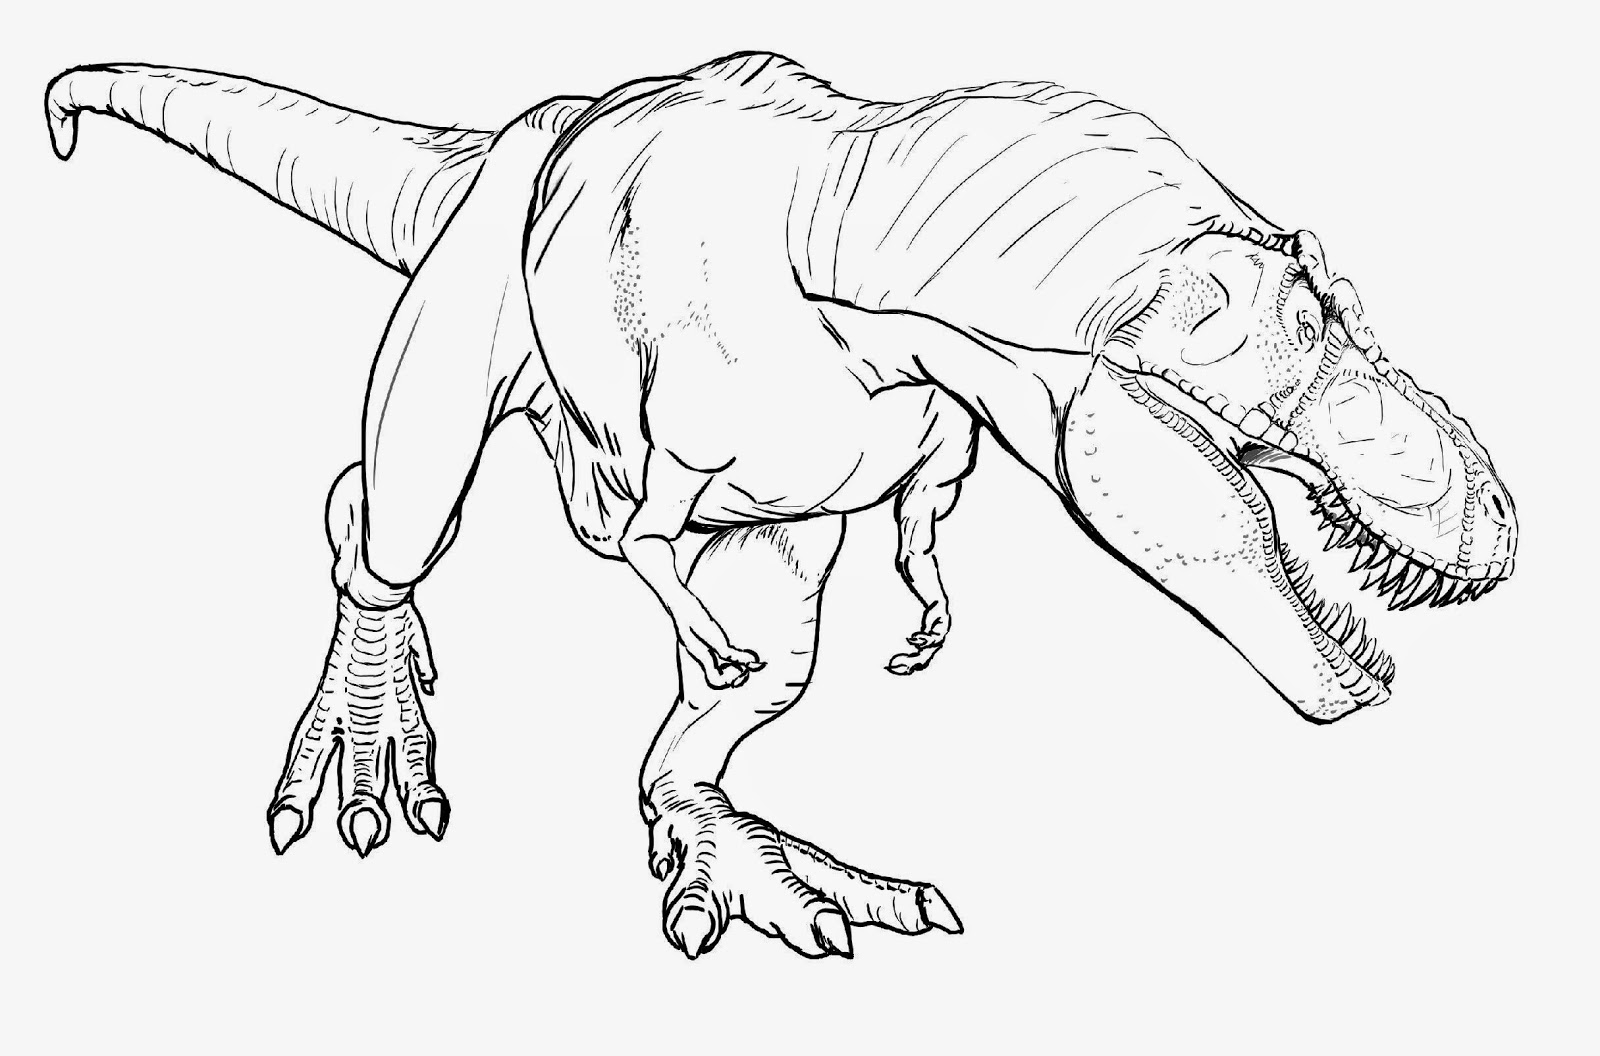 Free T Rex Dinosaurs Coloring Pages 6248 T Rex Dinosaurs Coloring to Print Of Coloring Book and Pages Free Printable Dinosaur Habitat Coloring Printable